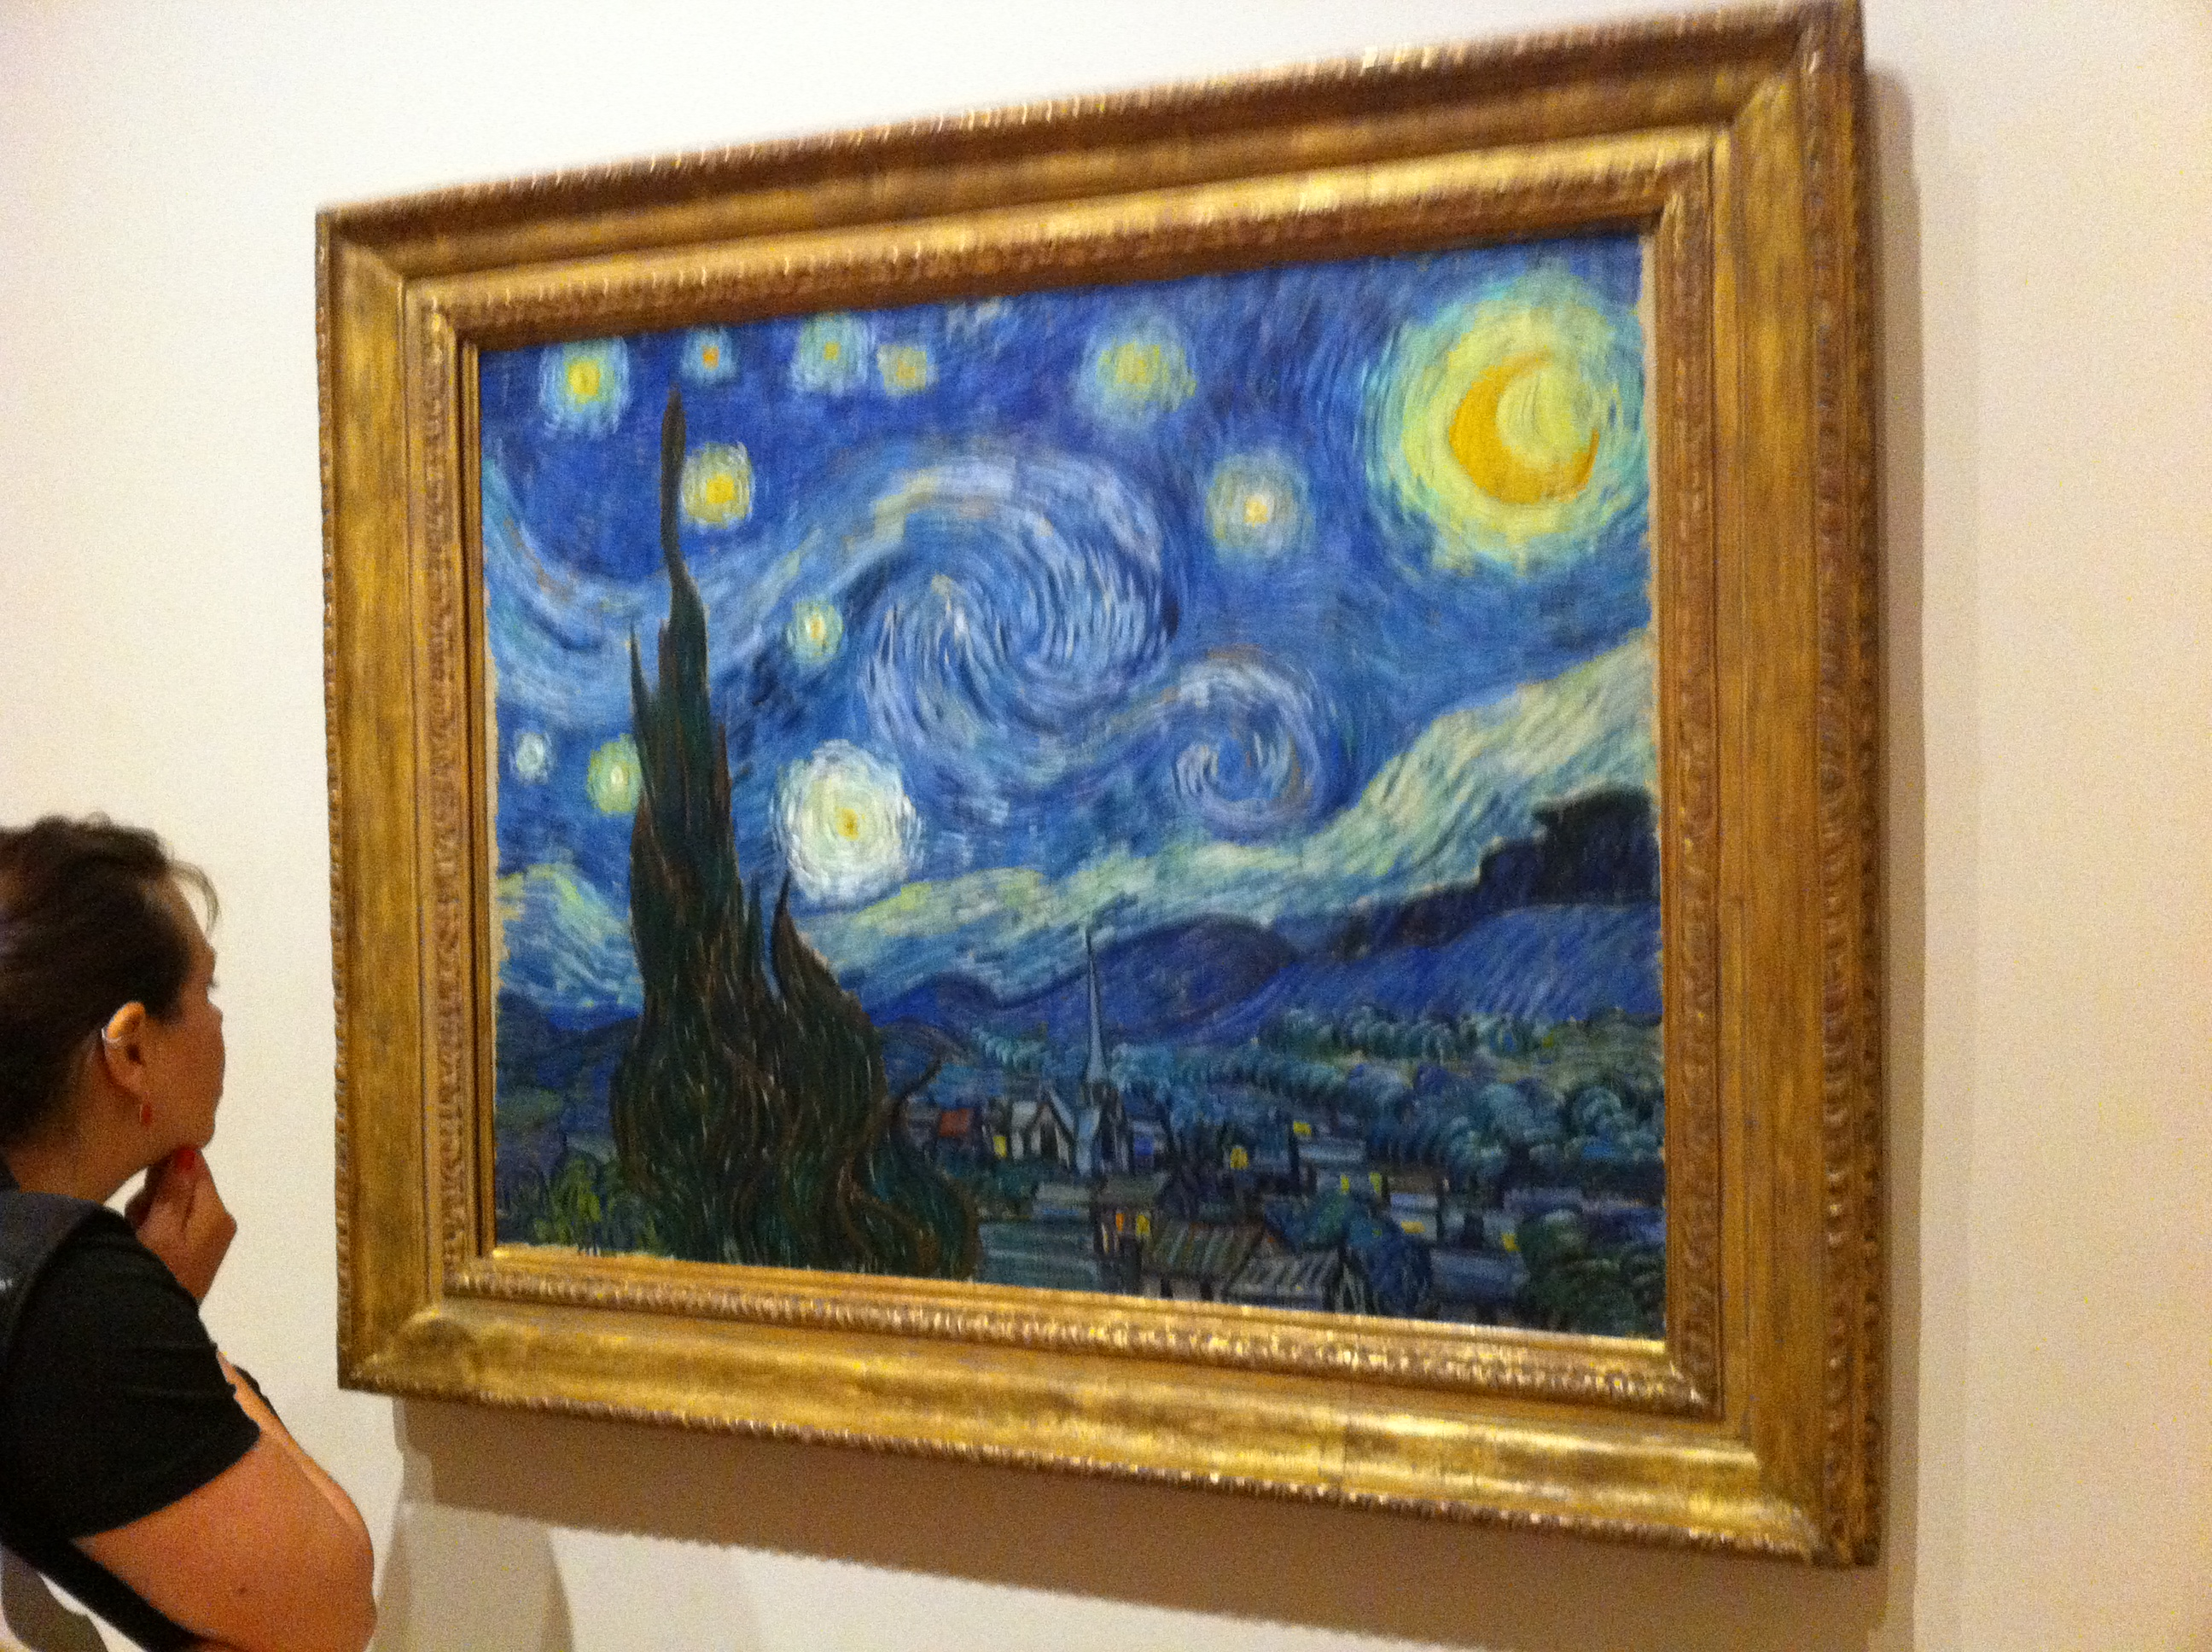 van gogh starry night essay